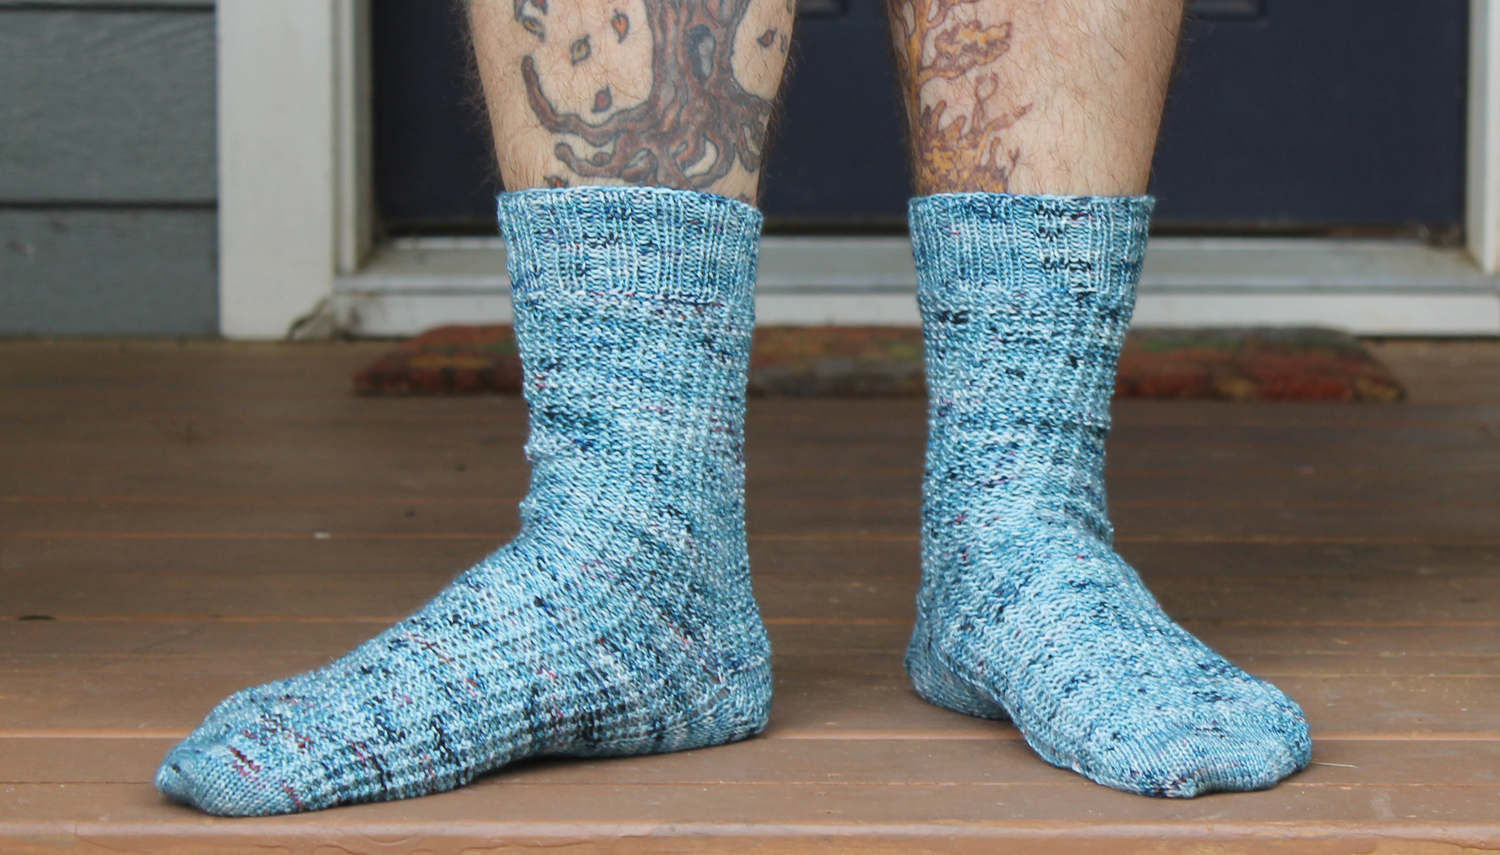 e9c6384701e Rice Stitch Knit Socks for Alex. Socks are practically the only knitting ...